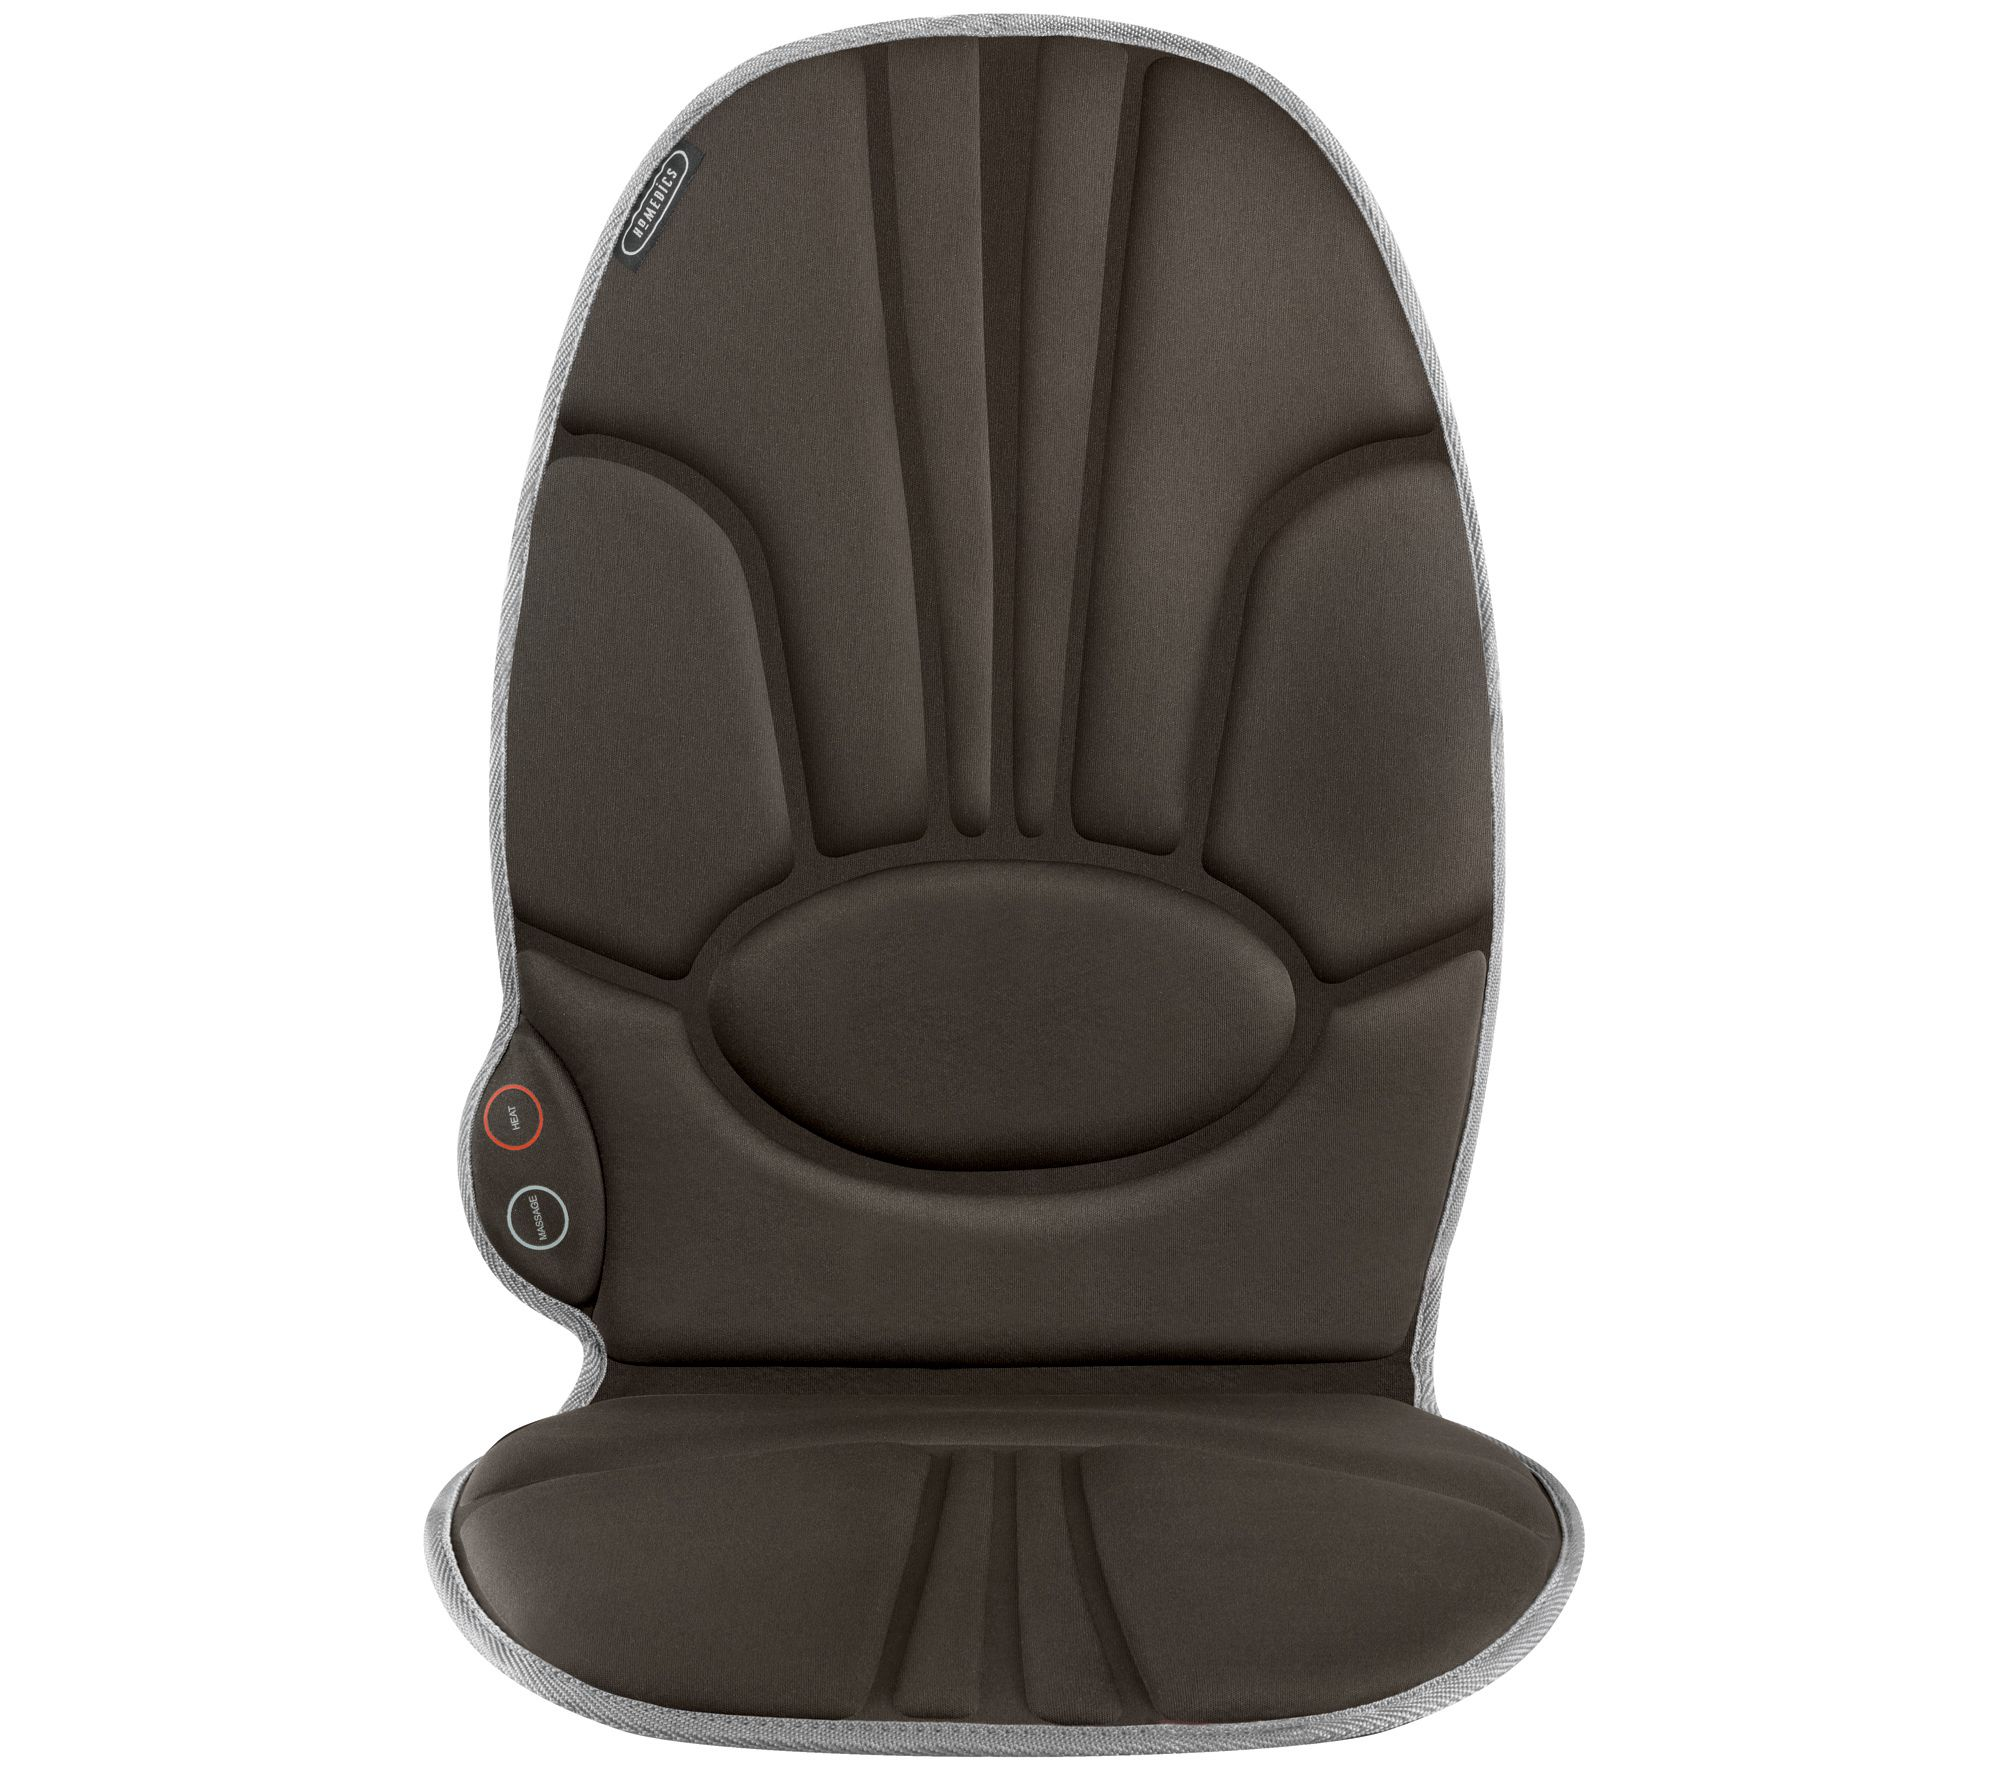 Massage Chair Cover Homedics Comfort Deluxe Massage Cushion With Heat Qvc